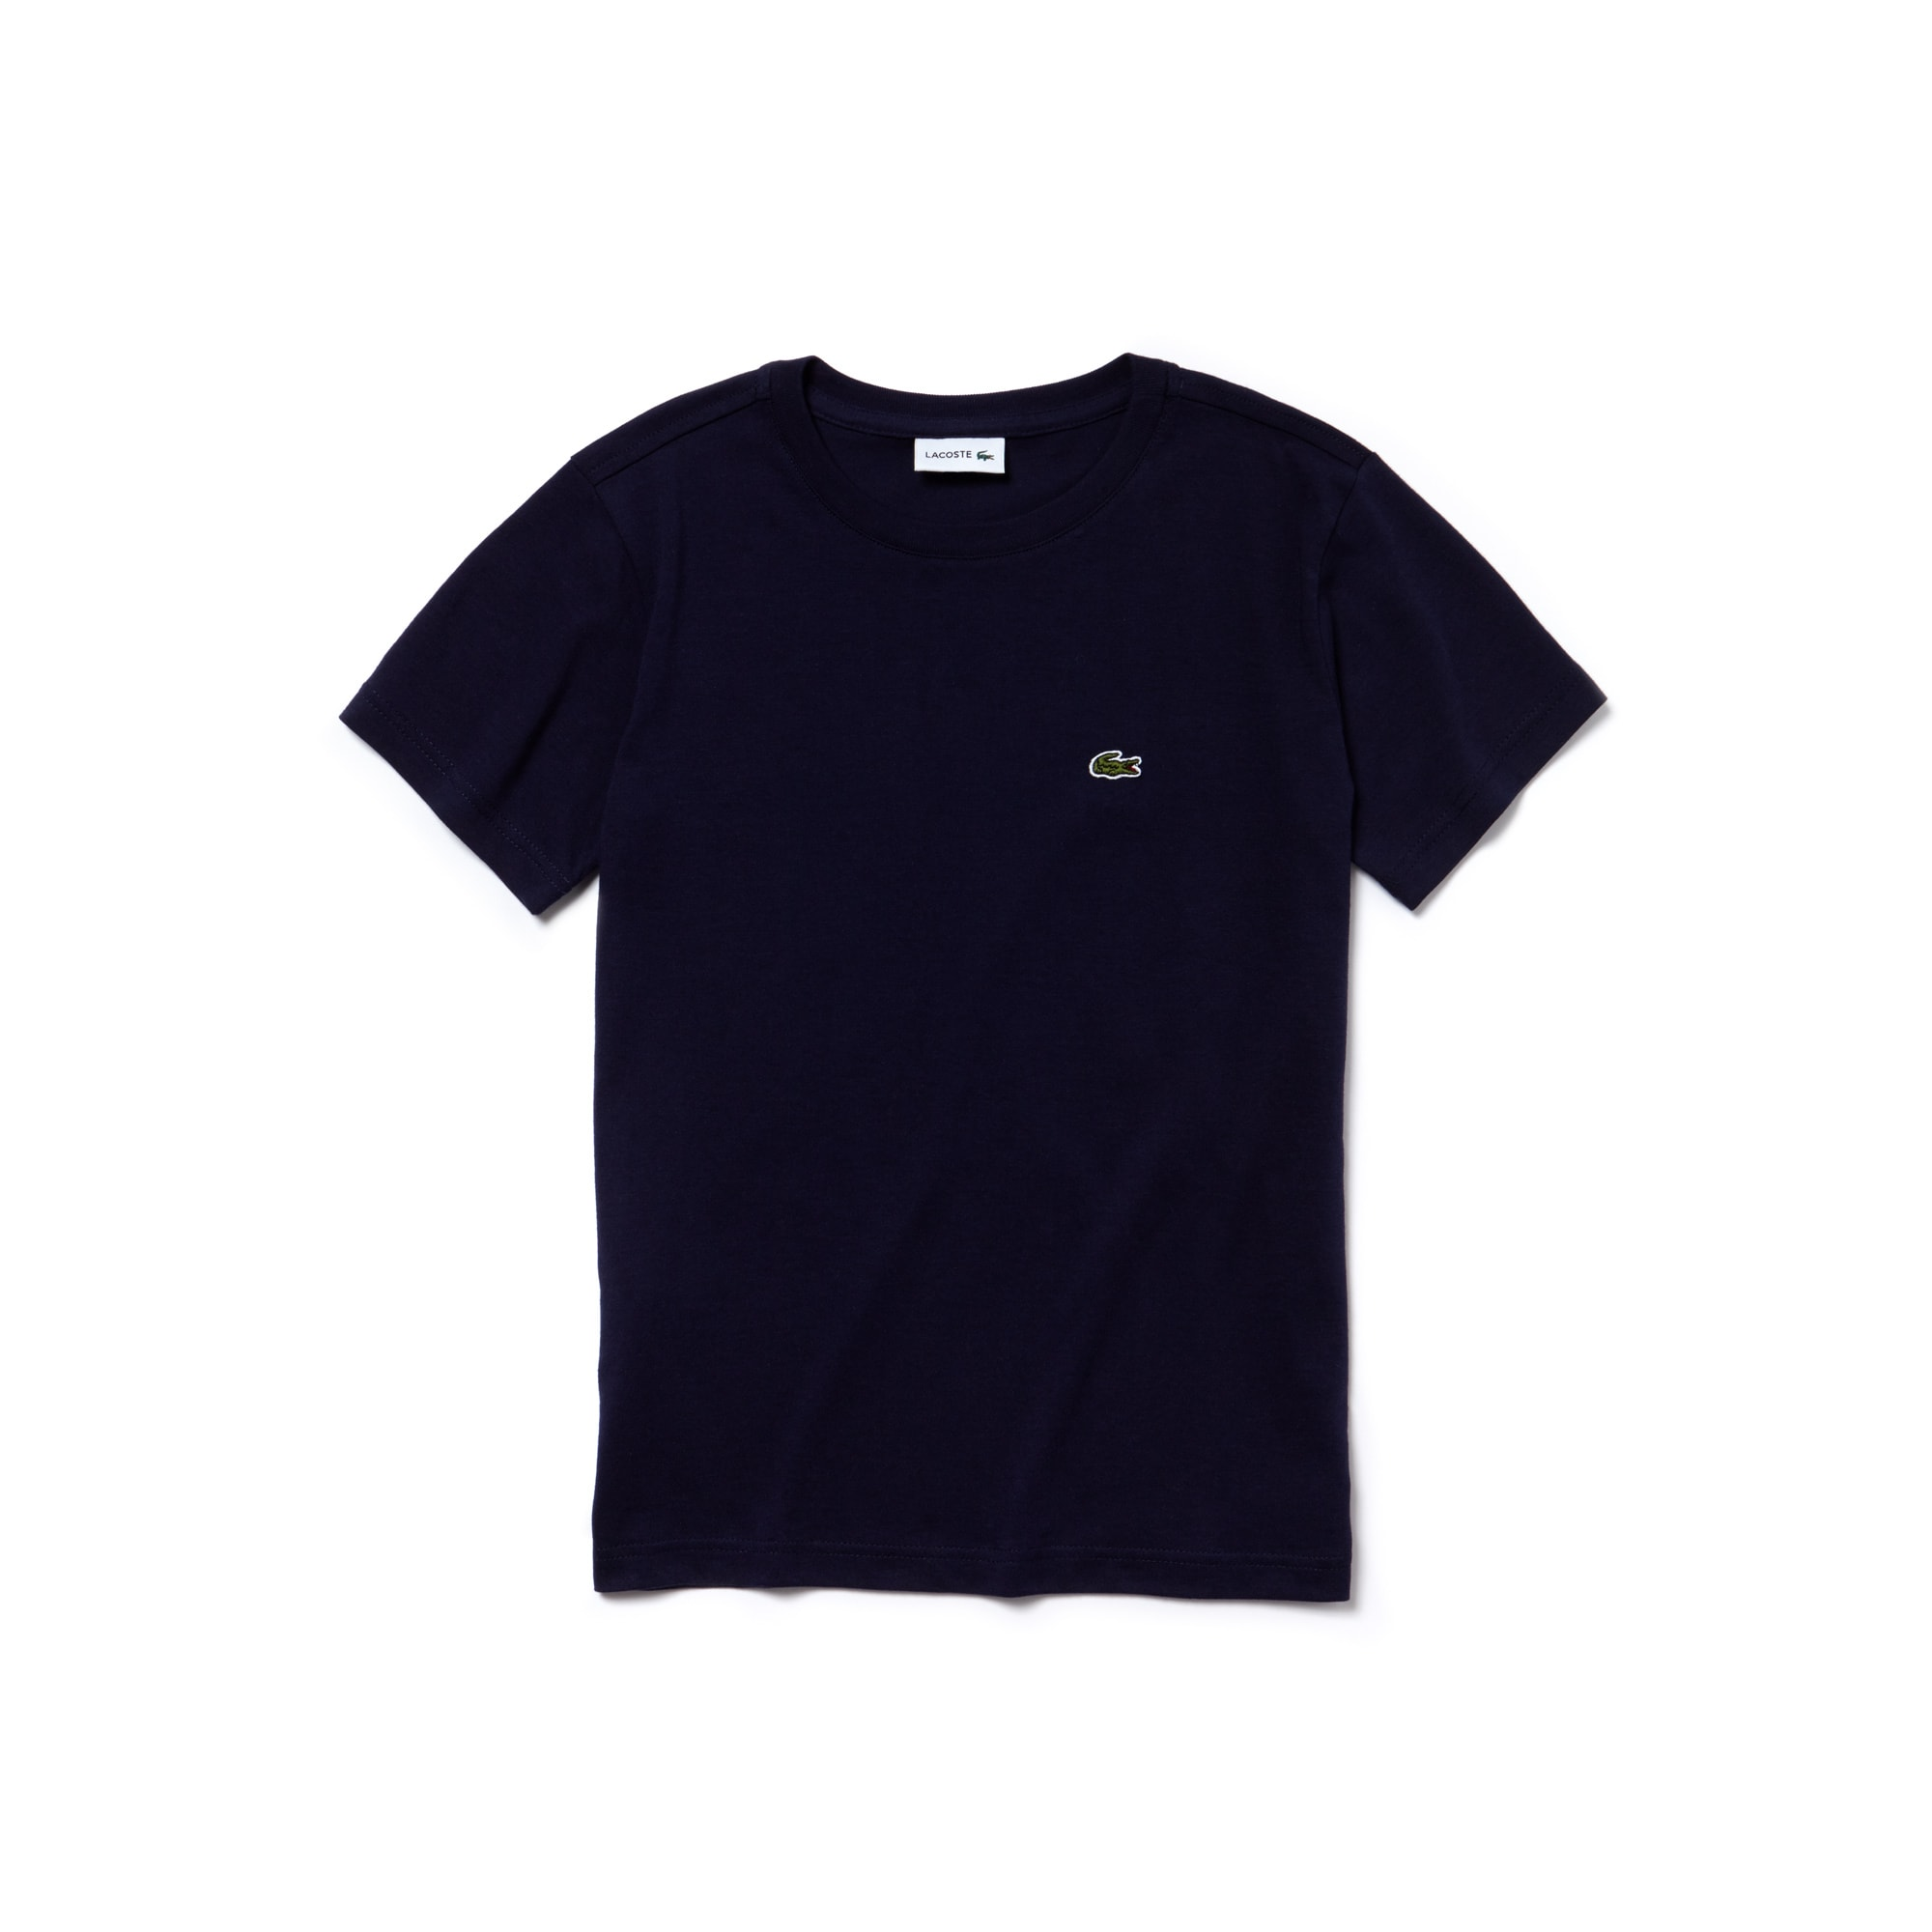 Boy's Crewneck Cotton T-Shirt